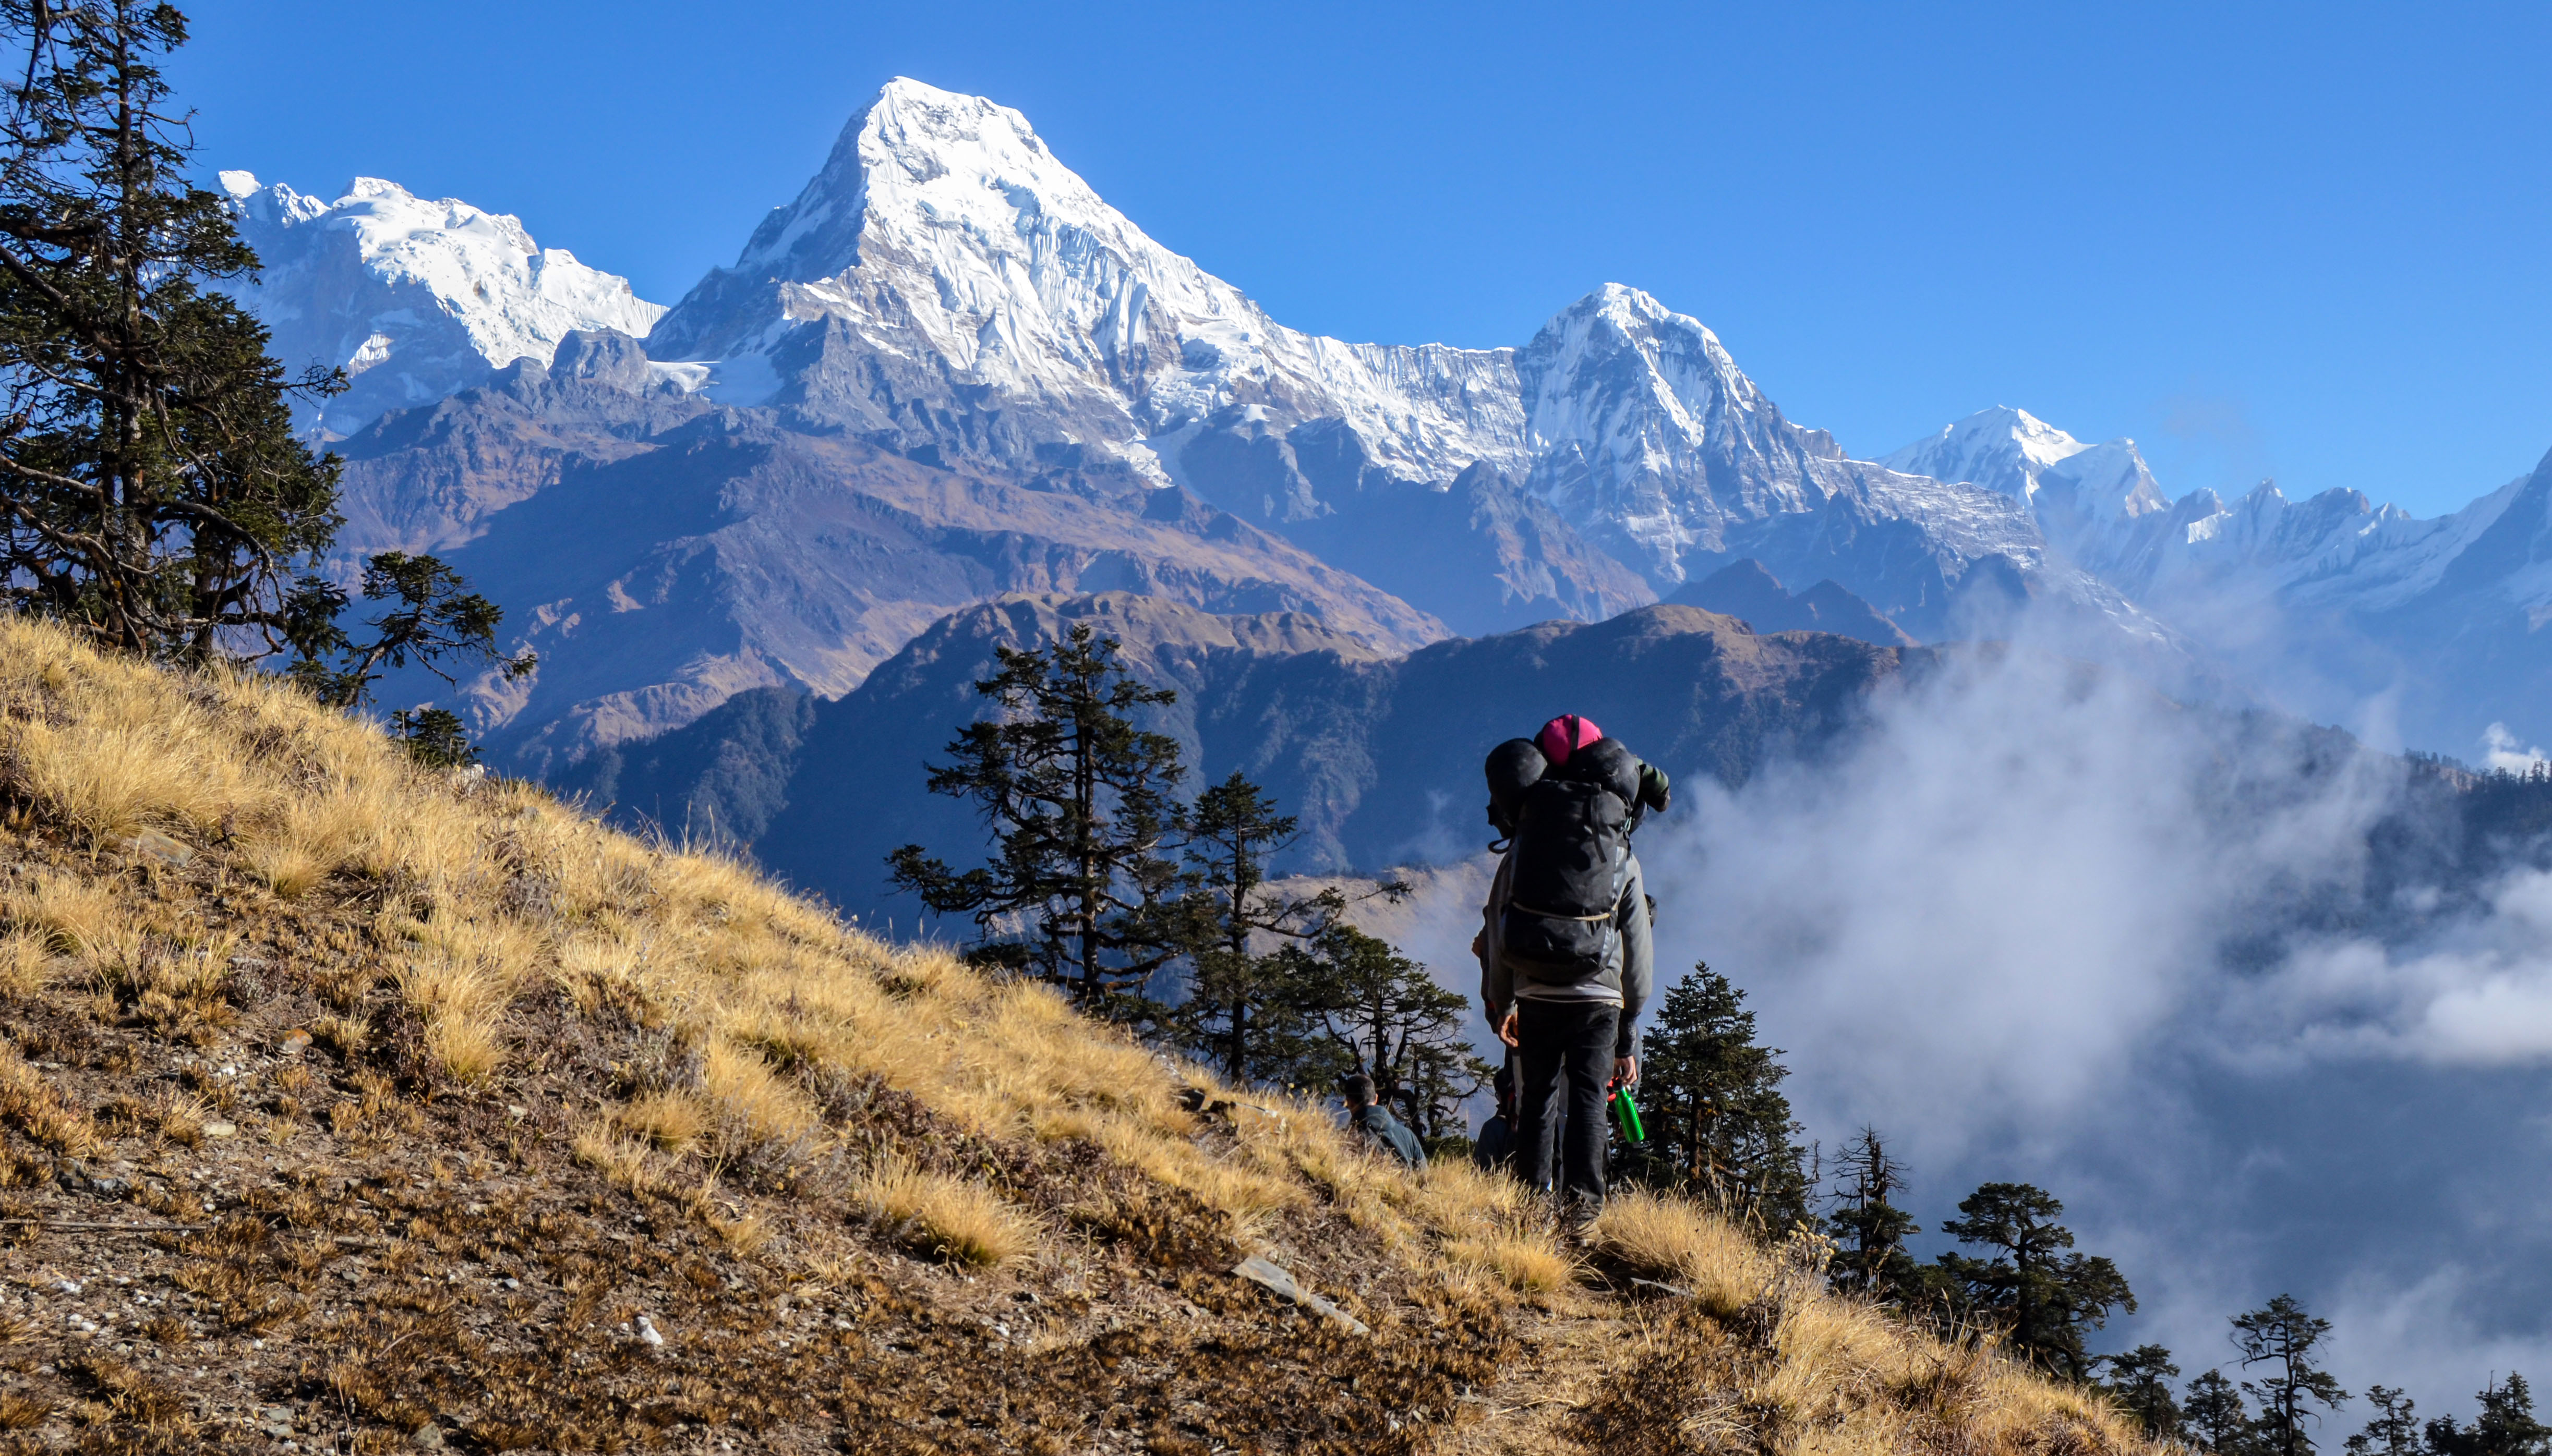 Home Royal Mountain Travel For Tours Treks In Nepal Tibet